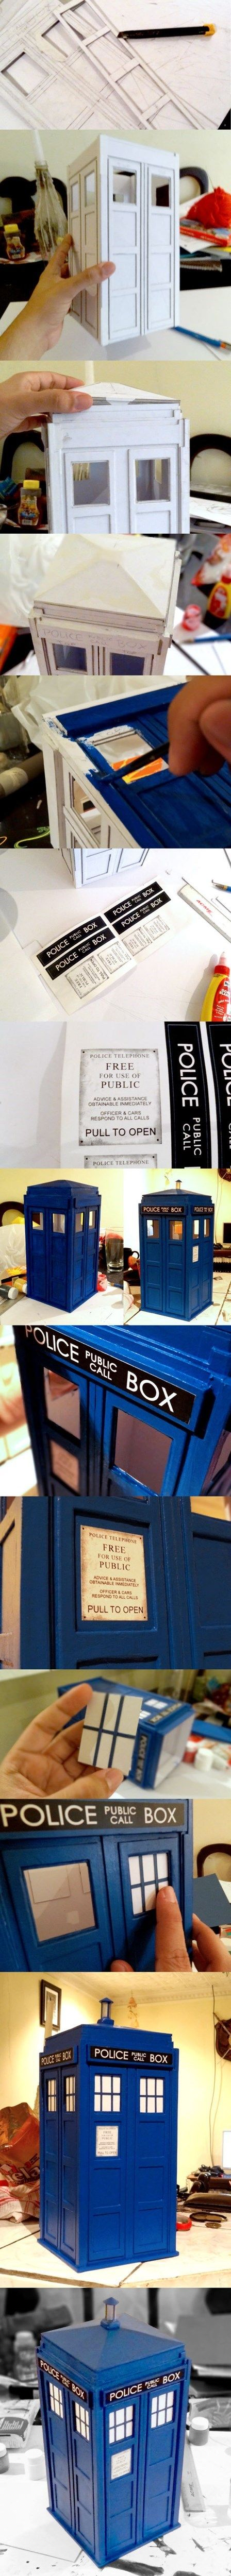 Paper Craft Your Own Public Call Box!      Can I put a little David Tenant inside?!